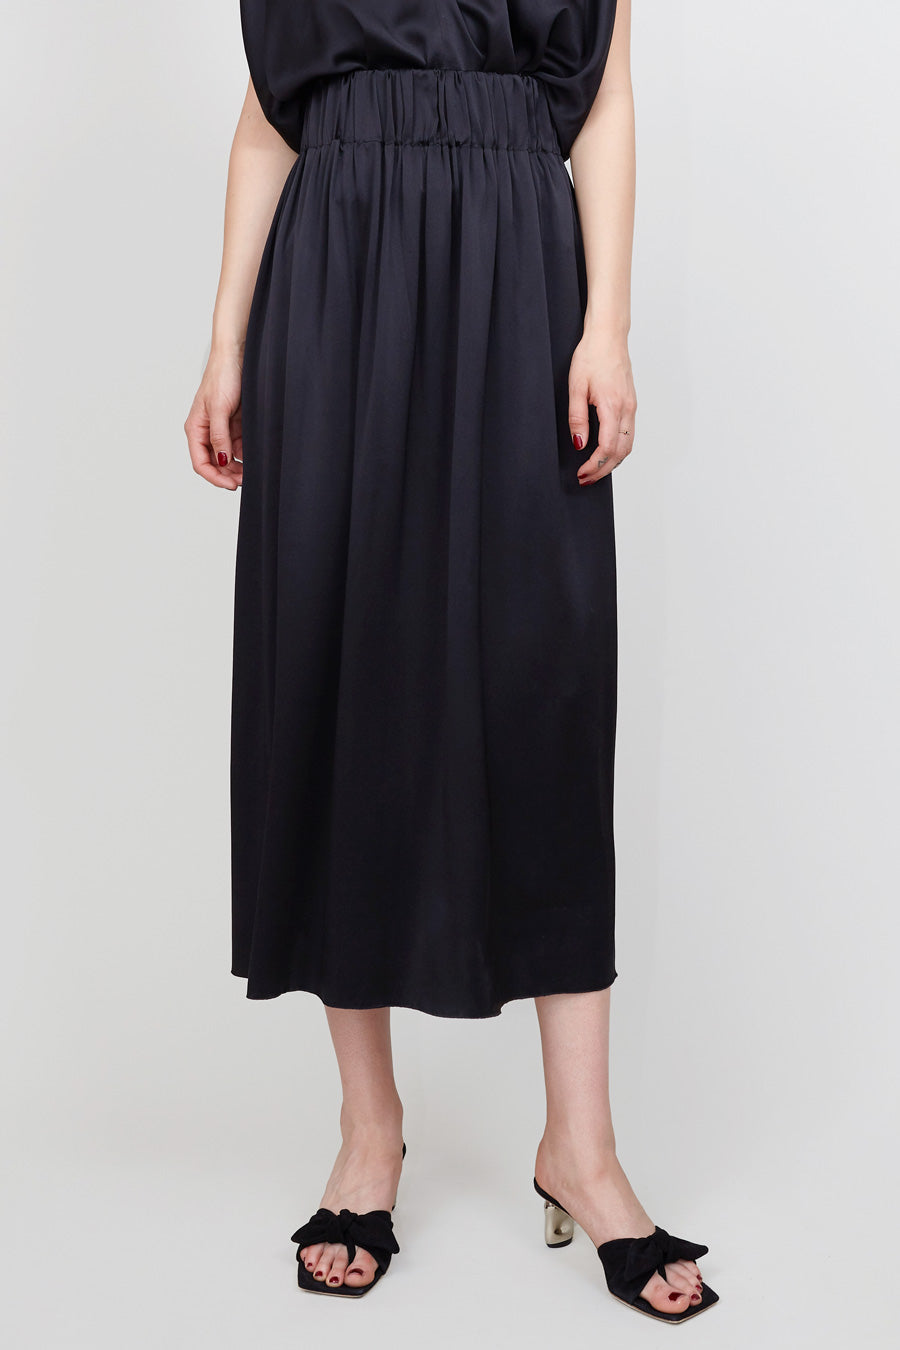 Miranda Bennett Paper Bag Skirt in Black Silk Charmeuse